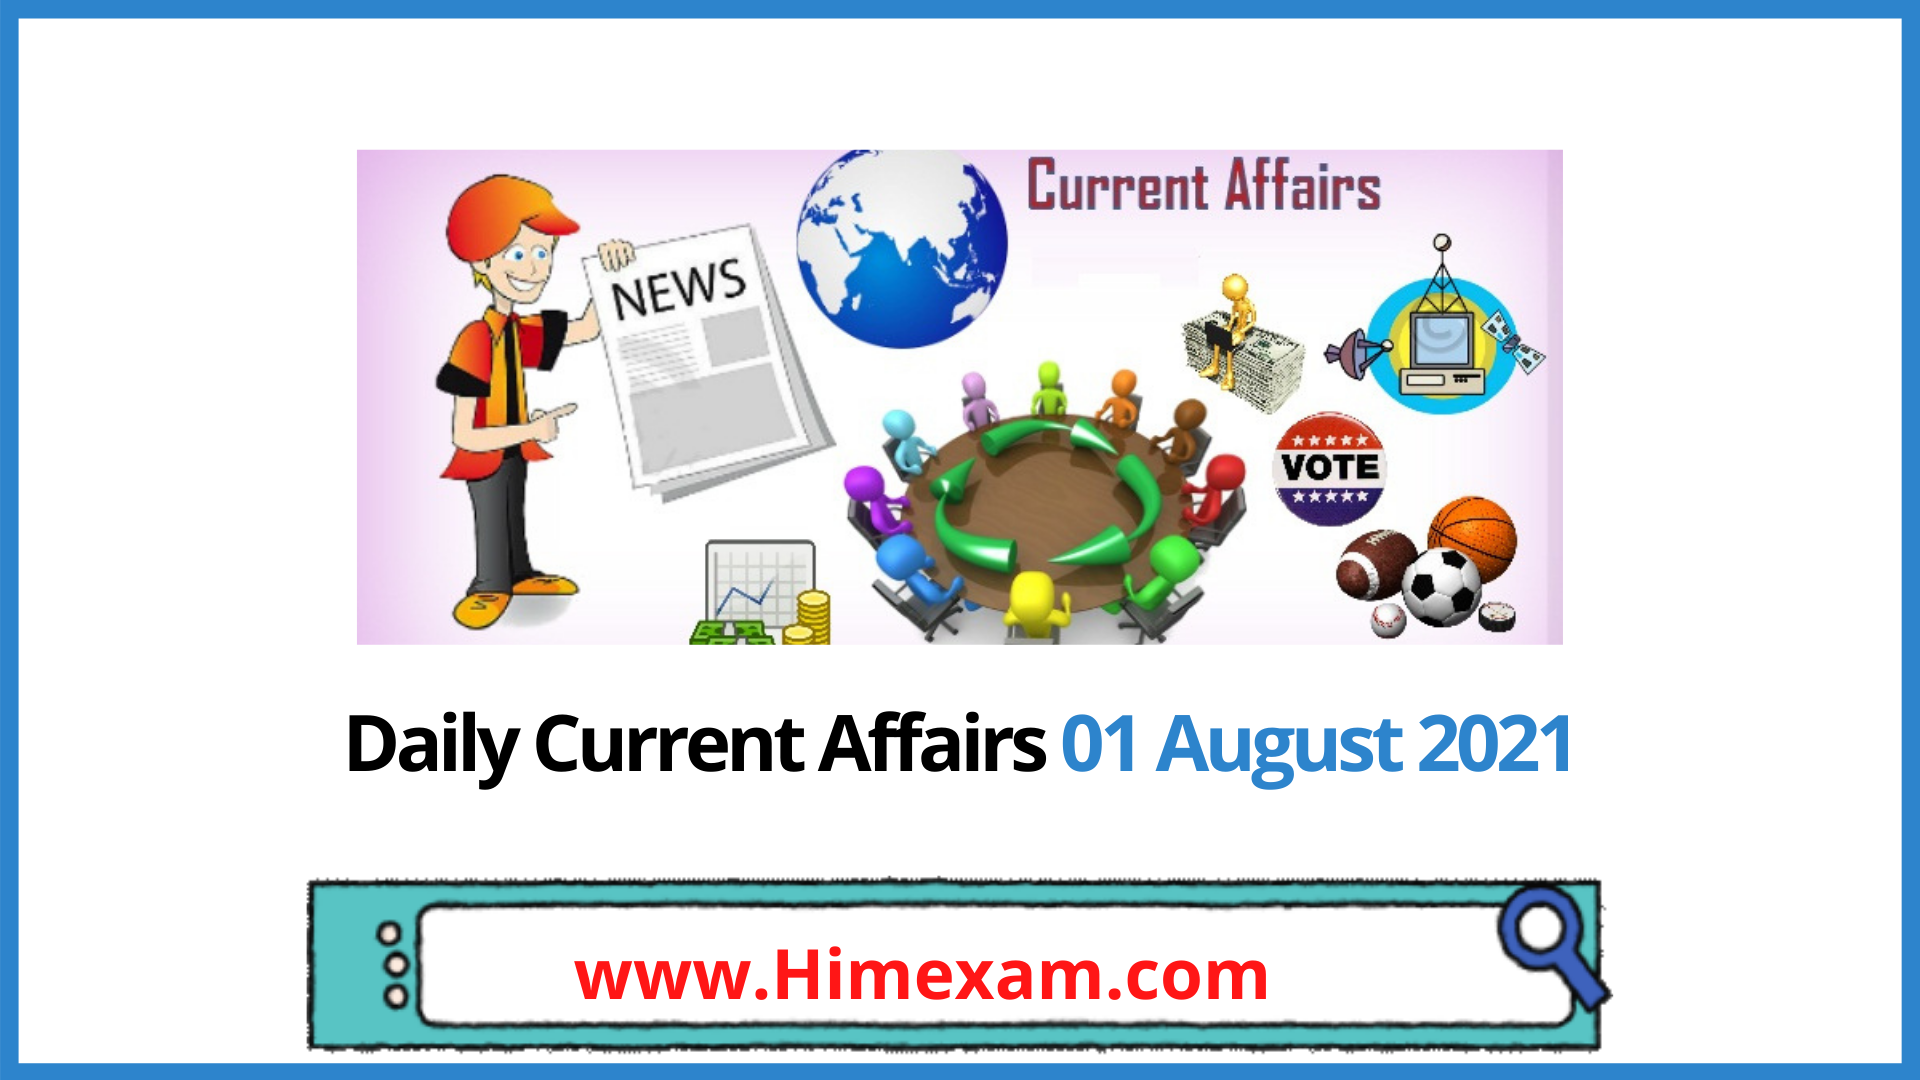 Daily Current Affairs 01 August 2021